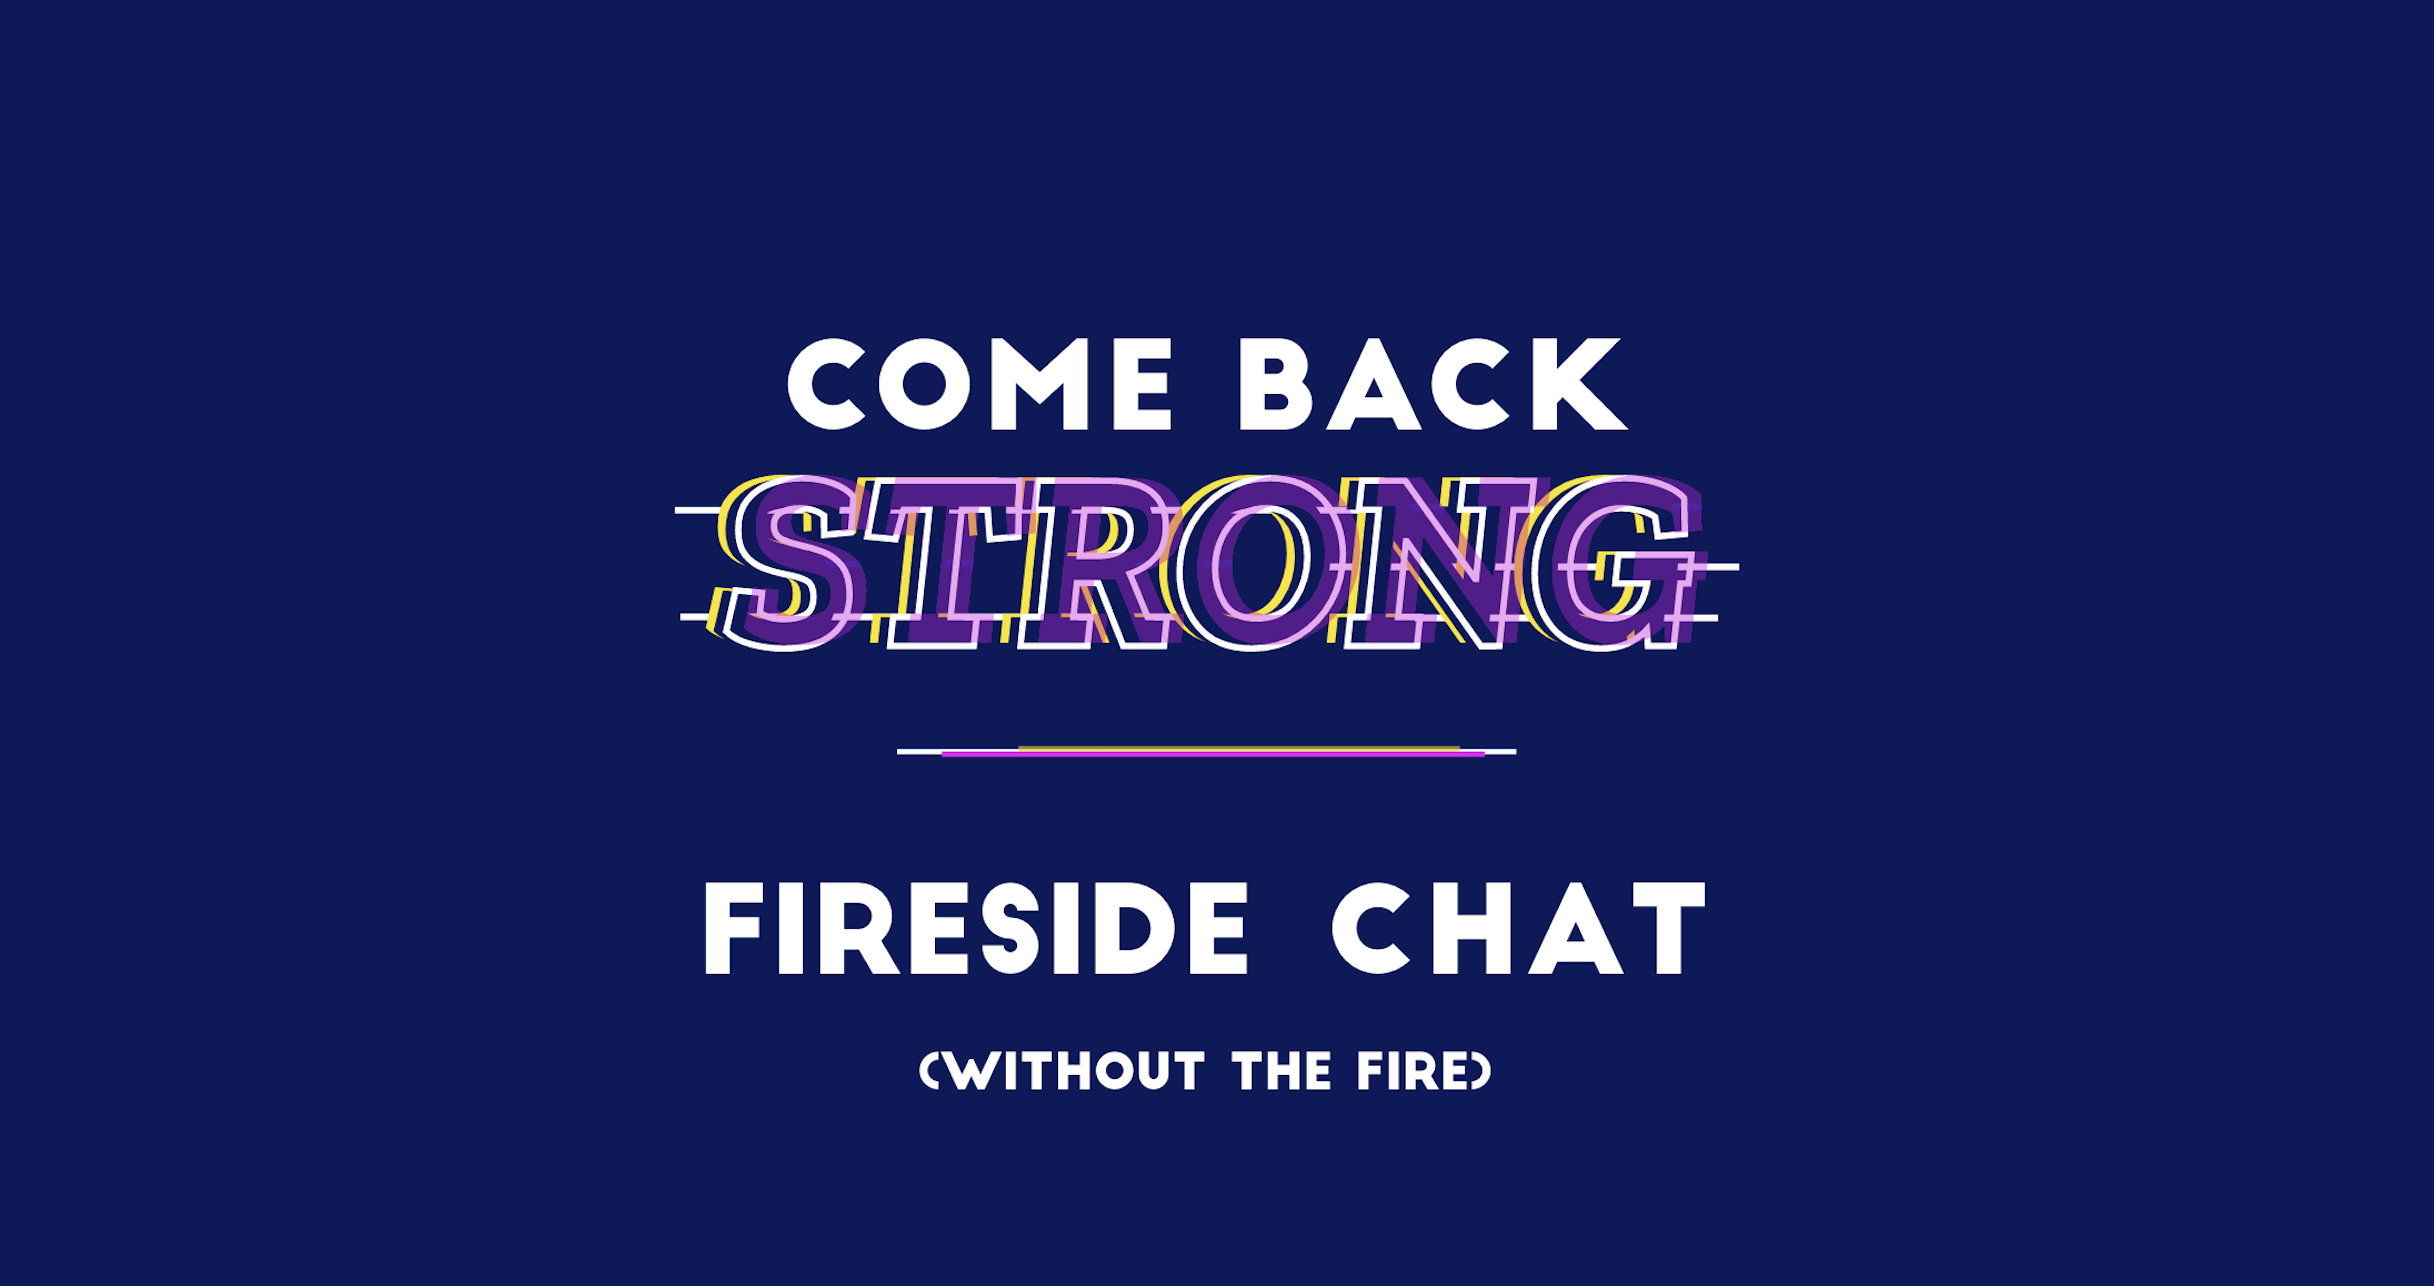 #ComeBackStrong 🔥 Fireside Chat with Bums on Seats